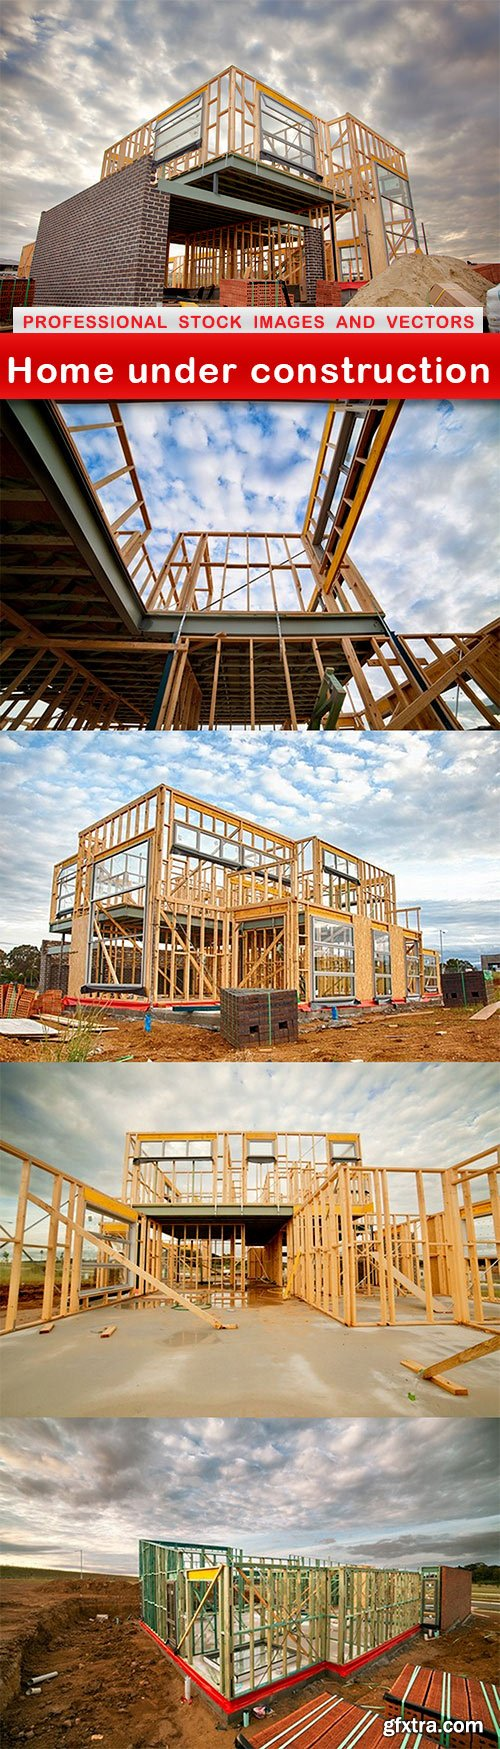 Home under construction - 5 UHQ JPEG